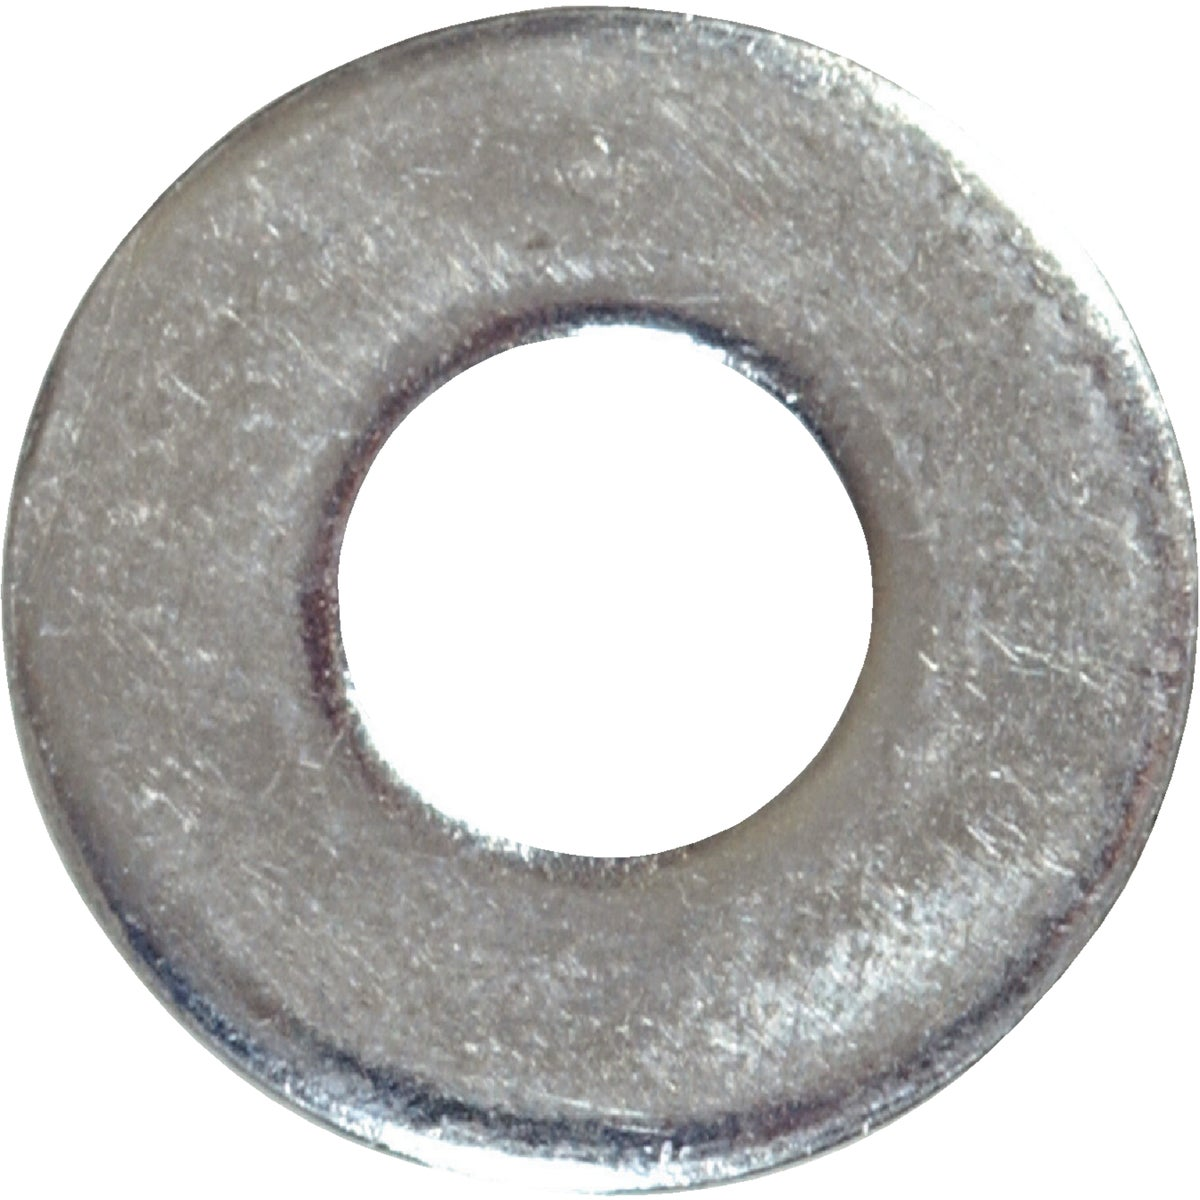 "100PC 1/4""USS FLT WASHER - 270055 by Hillman Fastener"